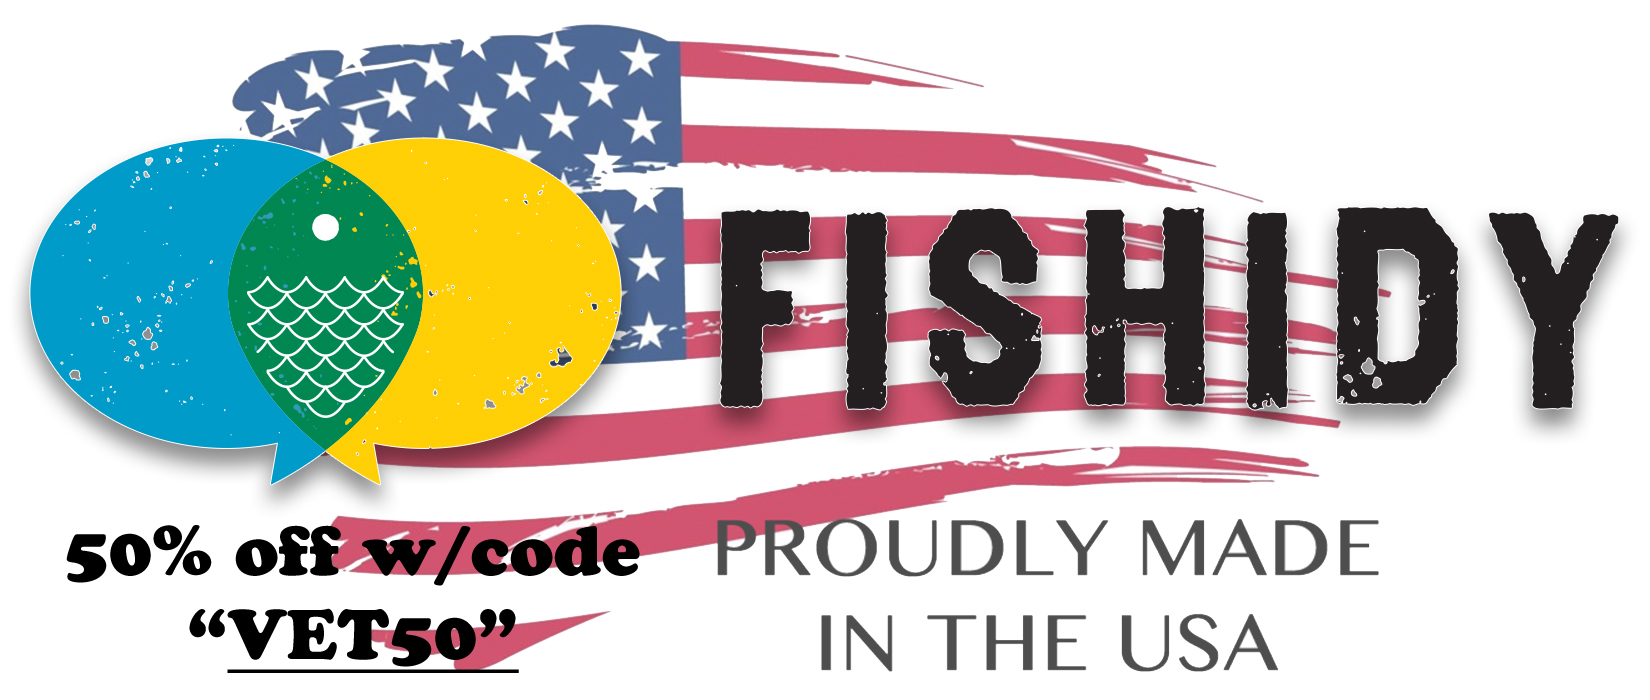 fishidy veterans day